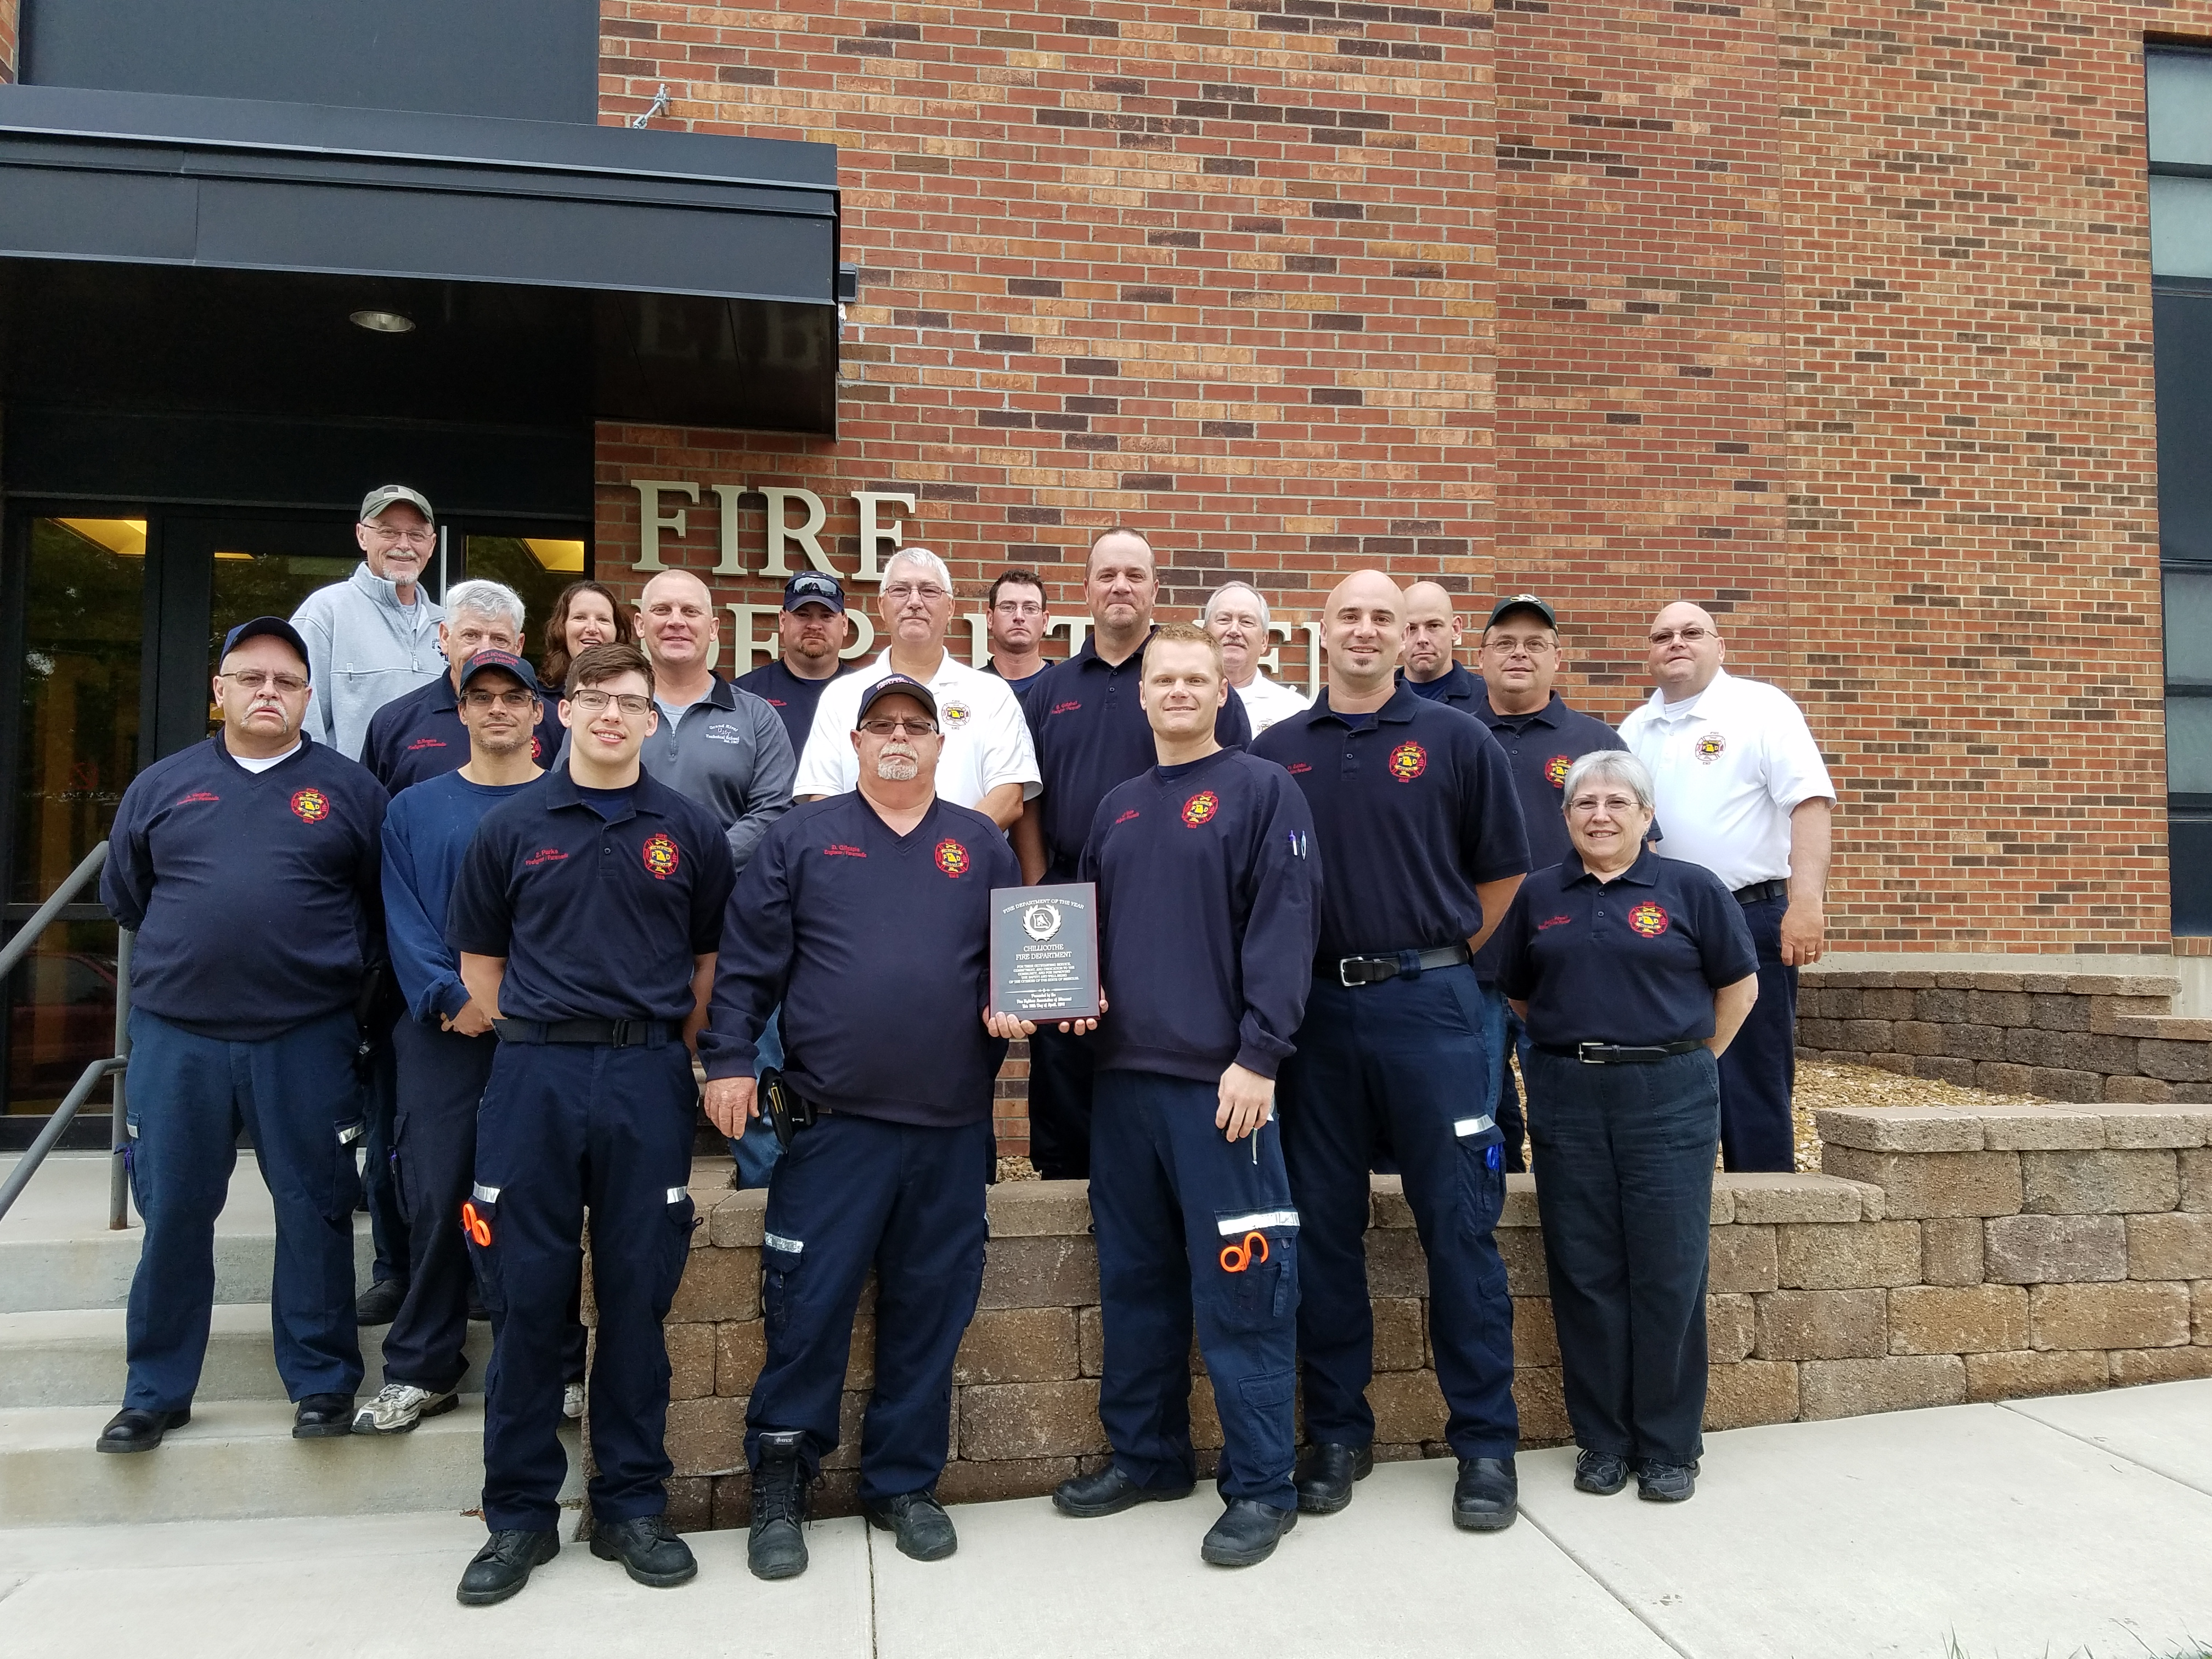 Chillicothe Fire Department named Department of the Year for 2016